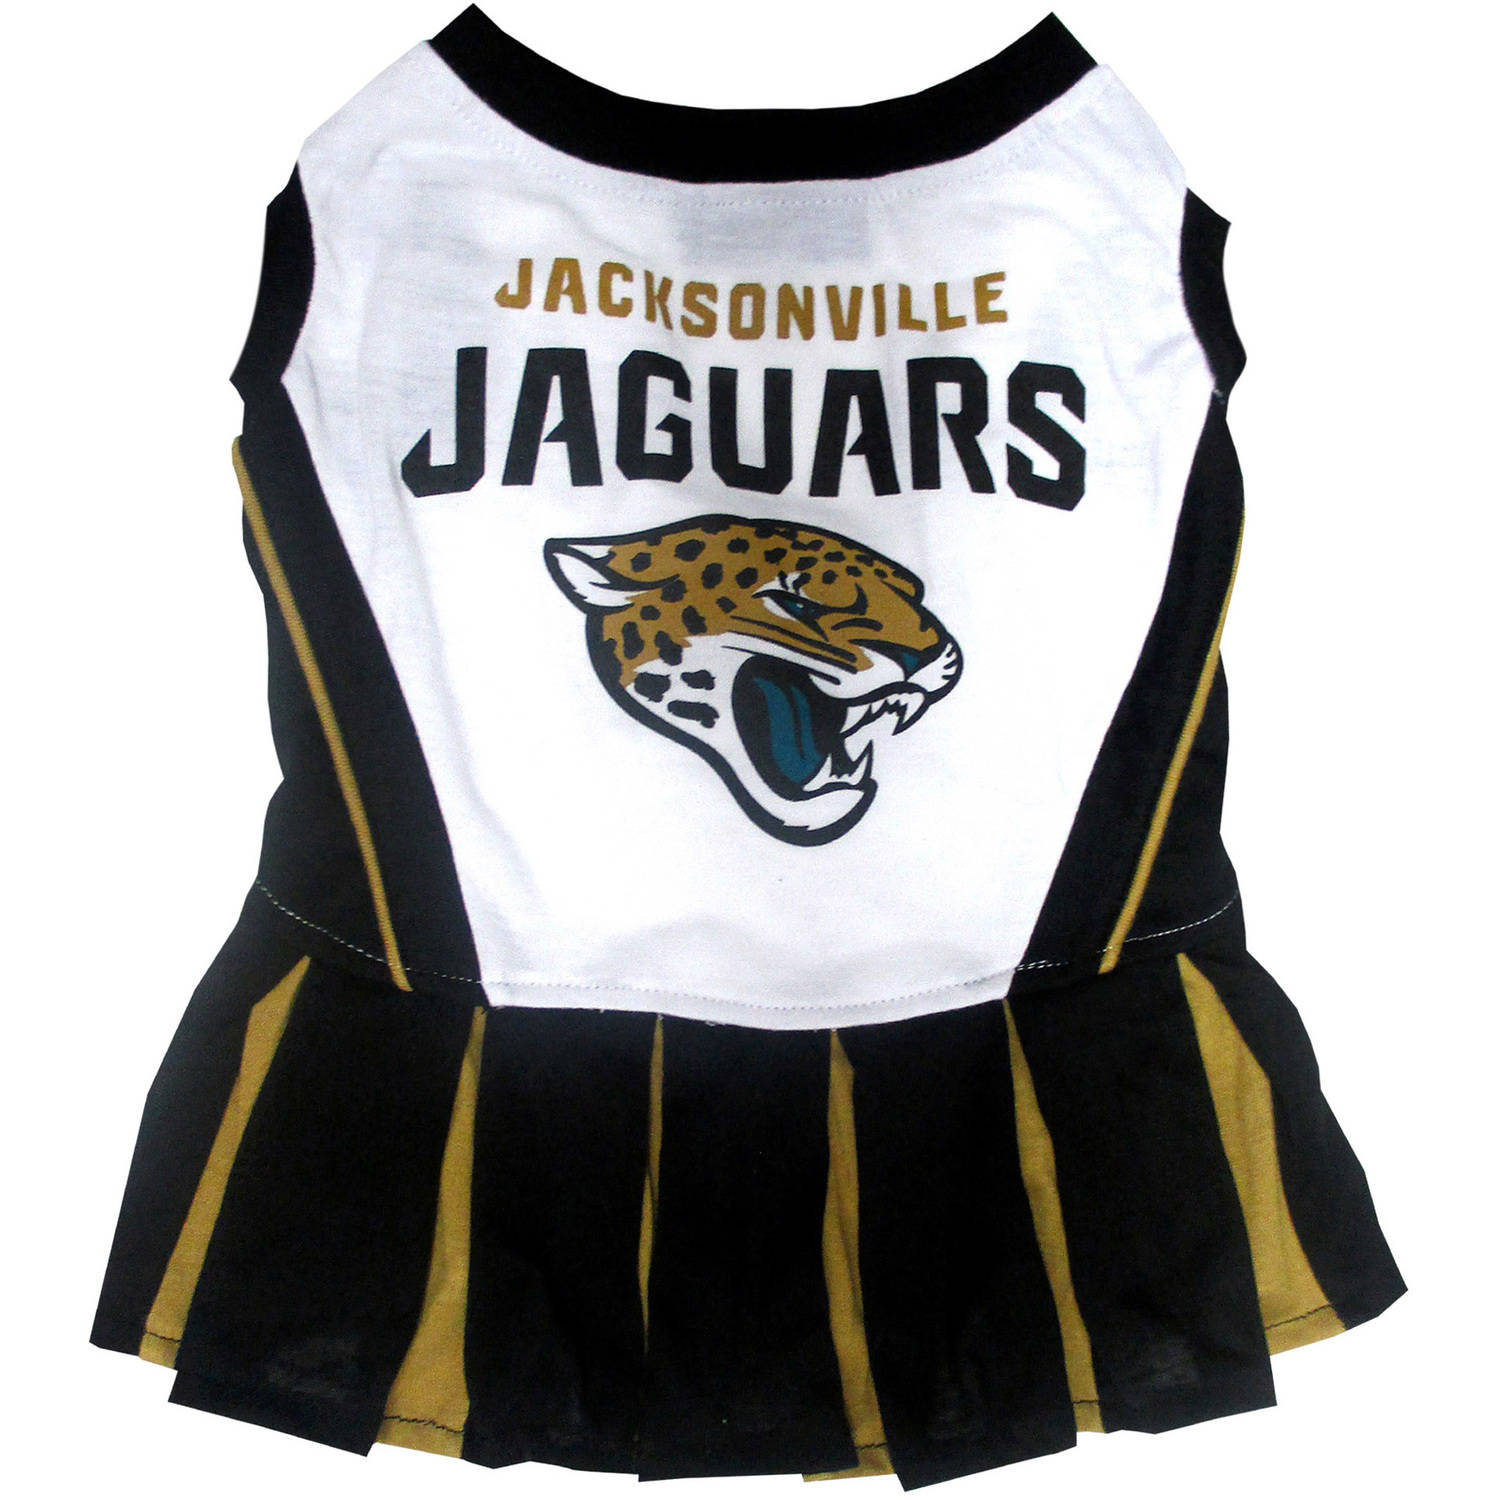 Pets First NFL Jacksonville Jaguars Cheerleader, 3 Sizes Pet Dress Available. Licensed Dog Outfit